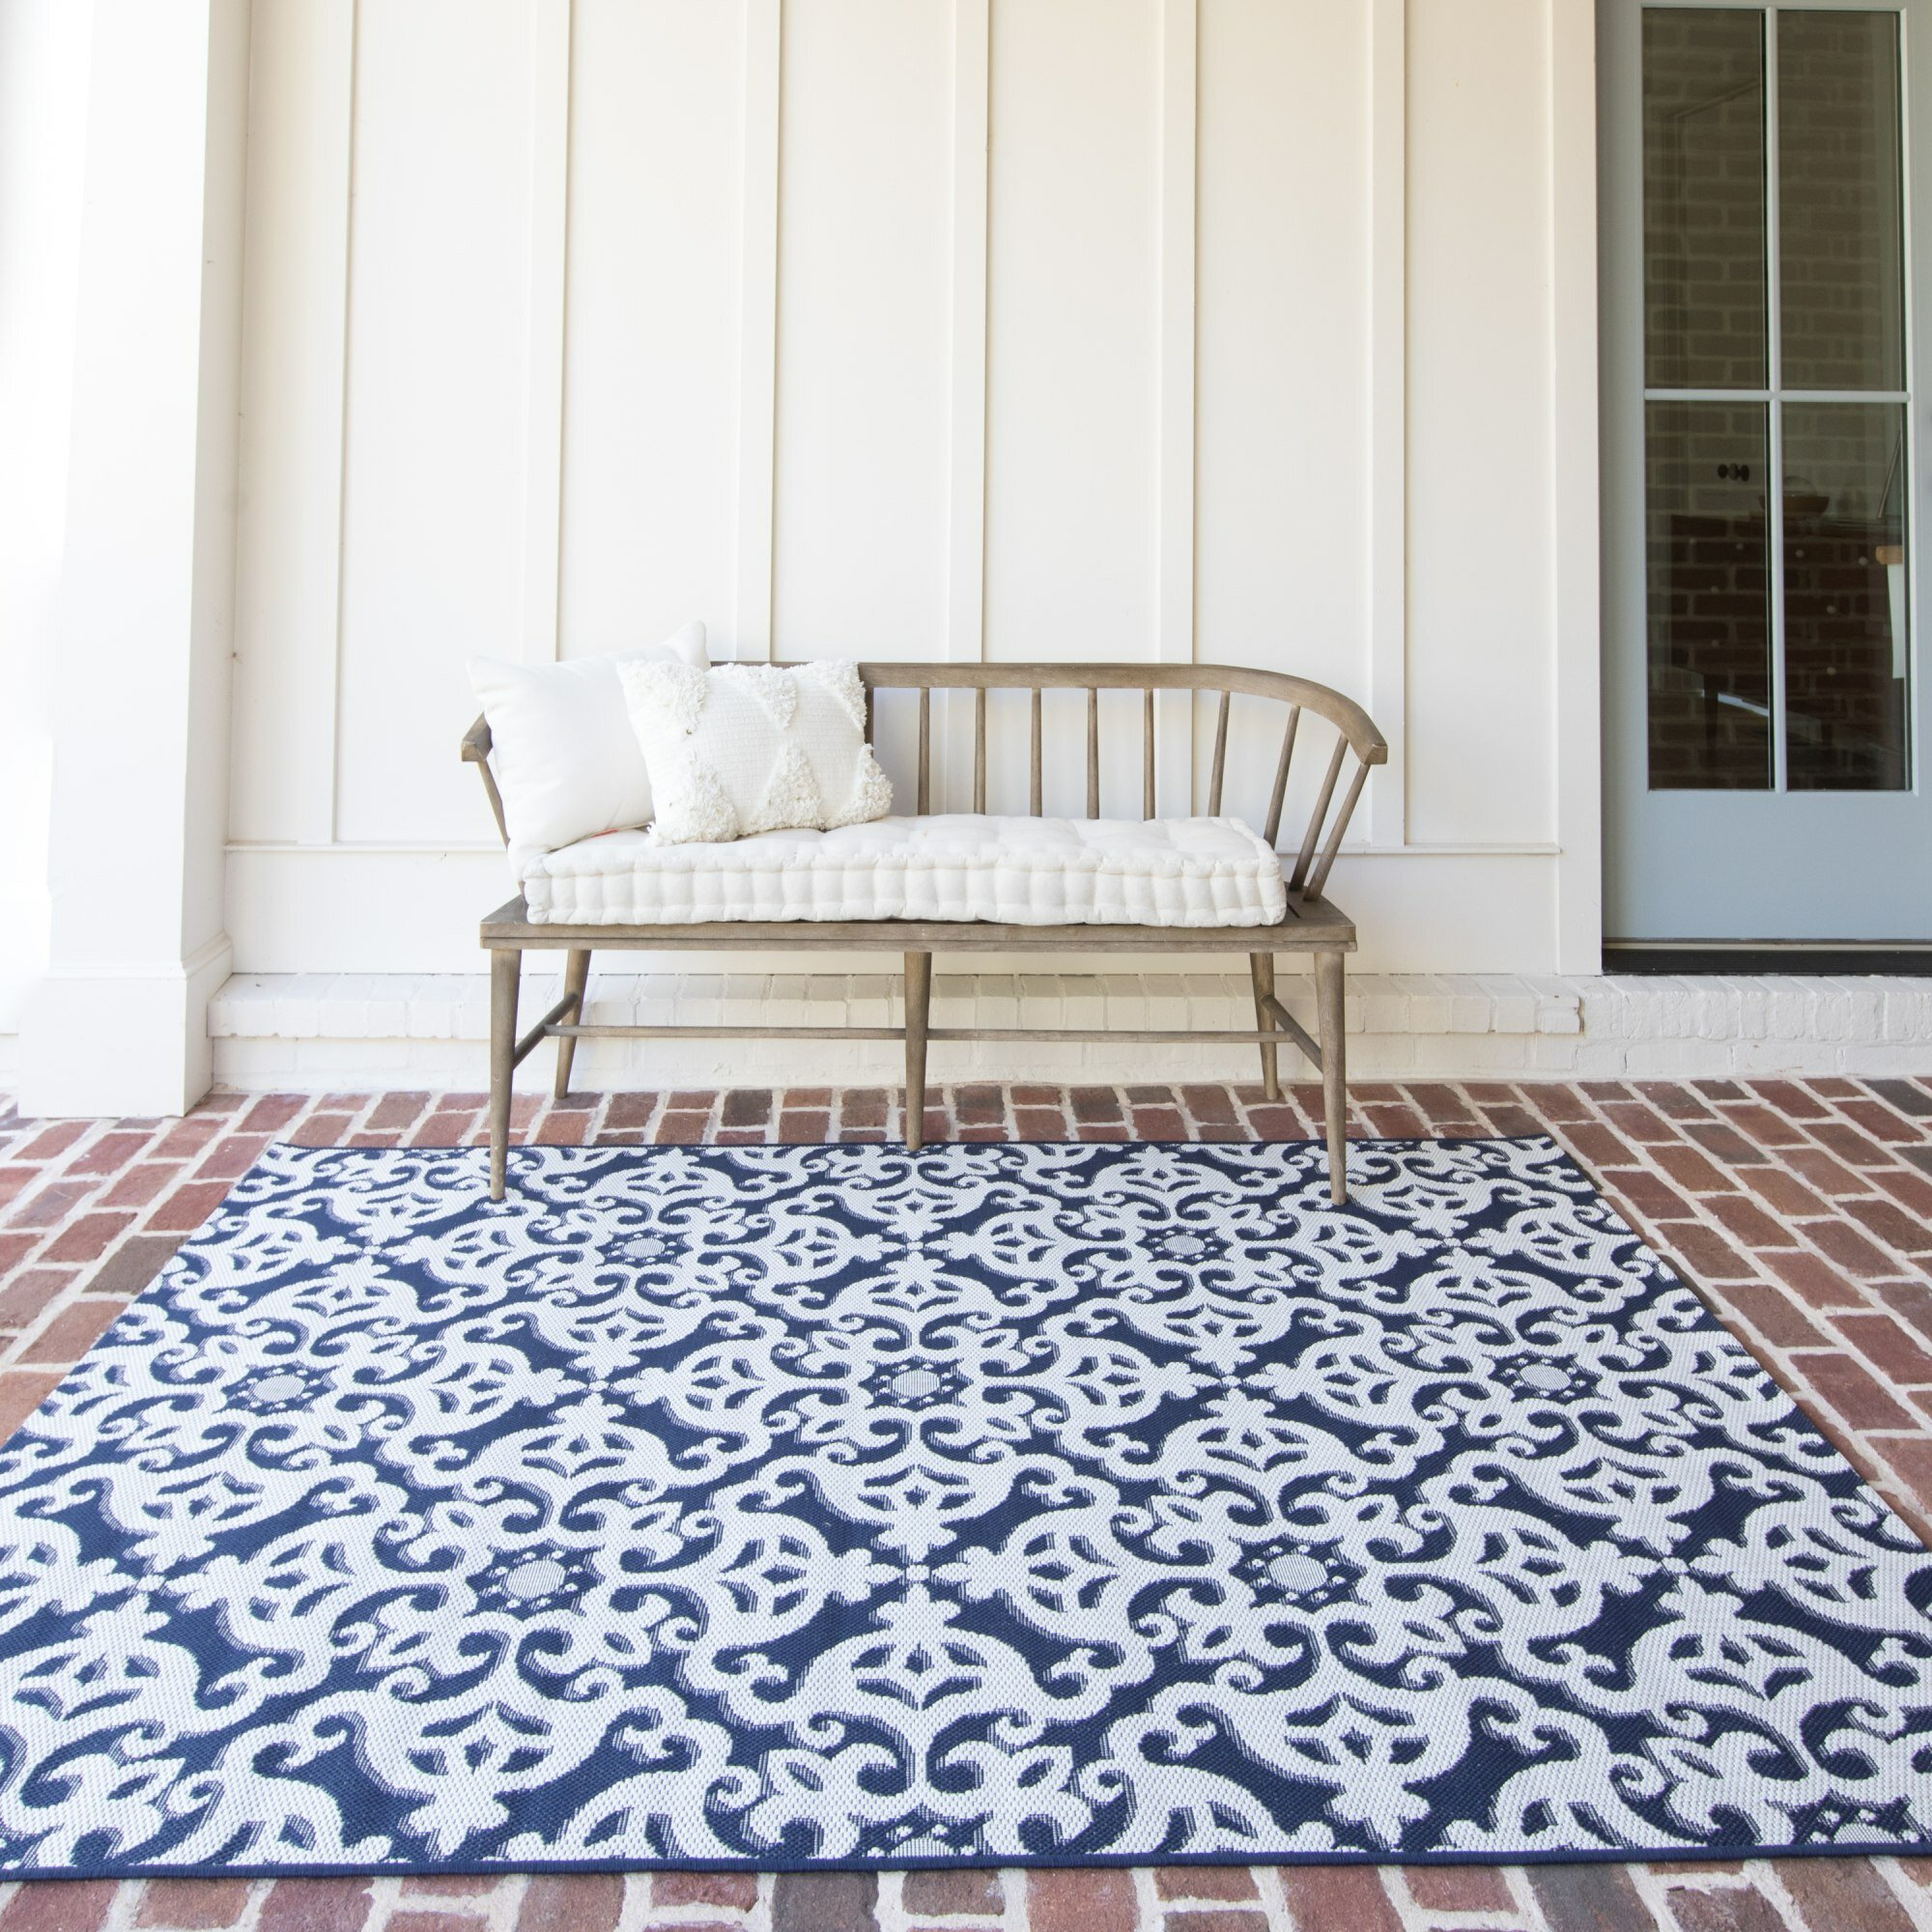 Shackelford Patio Navy Blue Indoor/Outdoor Area Rug